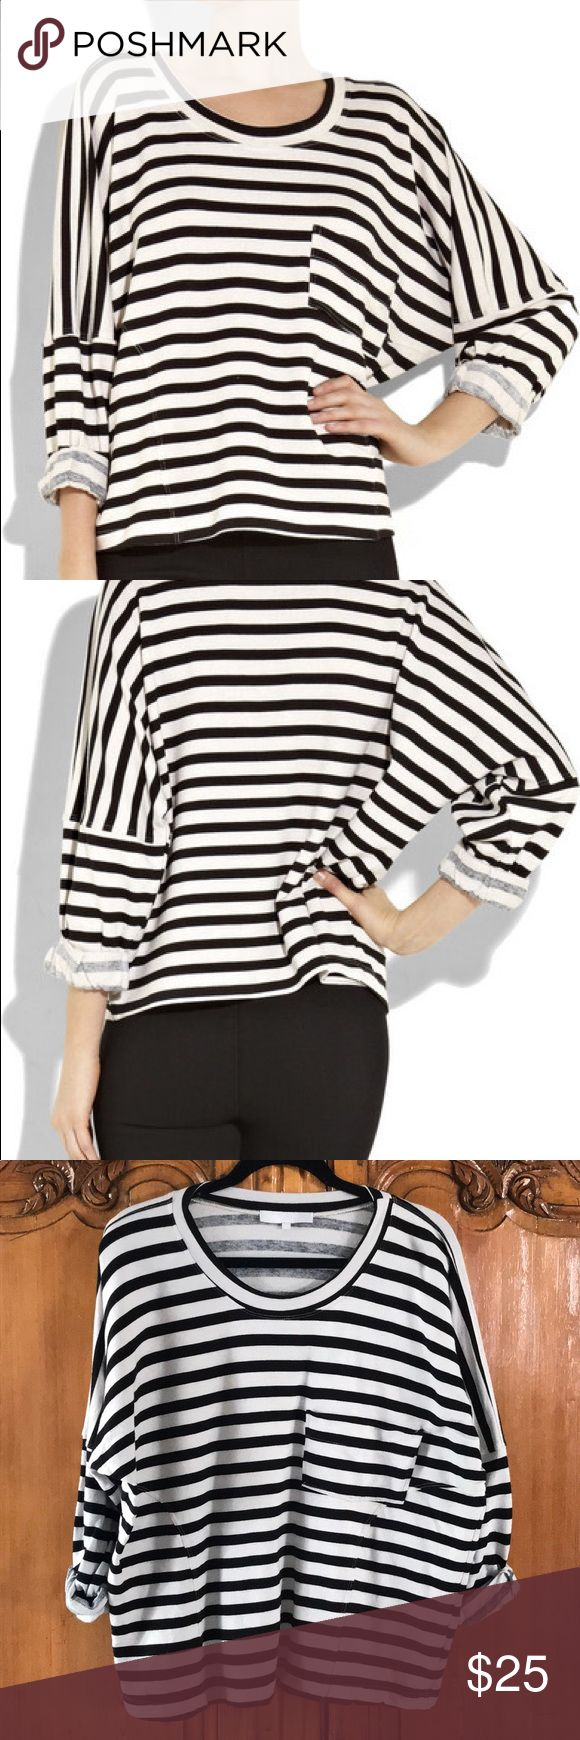 Kain Jersey Stripe Top Kain black and off white jersey top with classic stripe. Wonderful detail with front seaming and breast pocket. Oversized, slight fit, scoop neck and dropped shoulder seams, batwing sleeves and rolled cuffs. Simple slip on Style. Excellent condition. Kain Tops